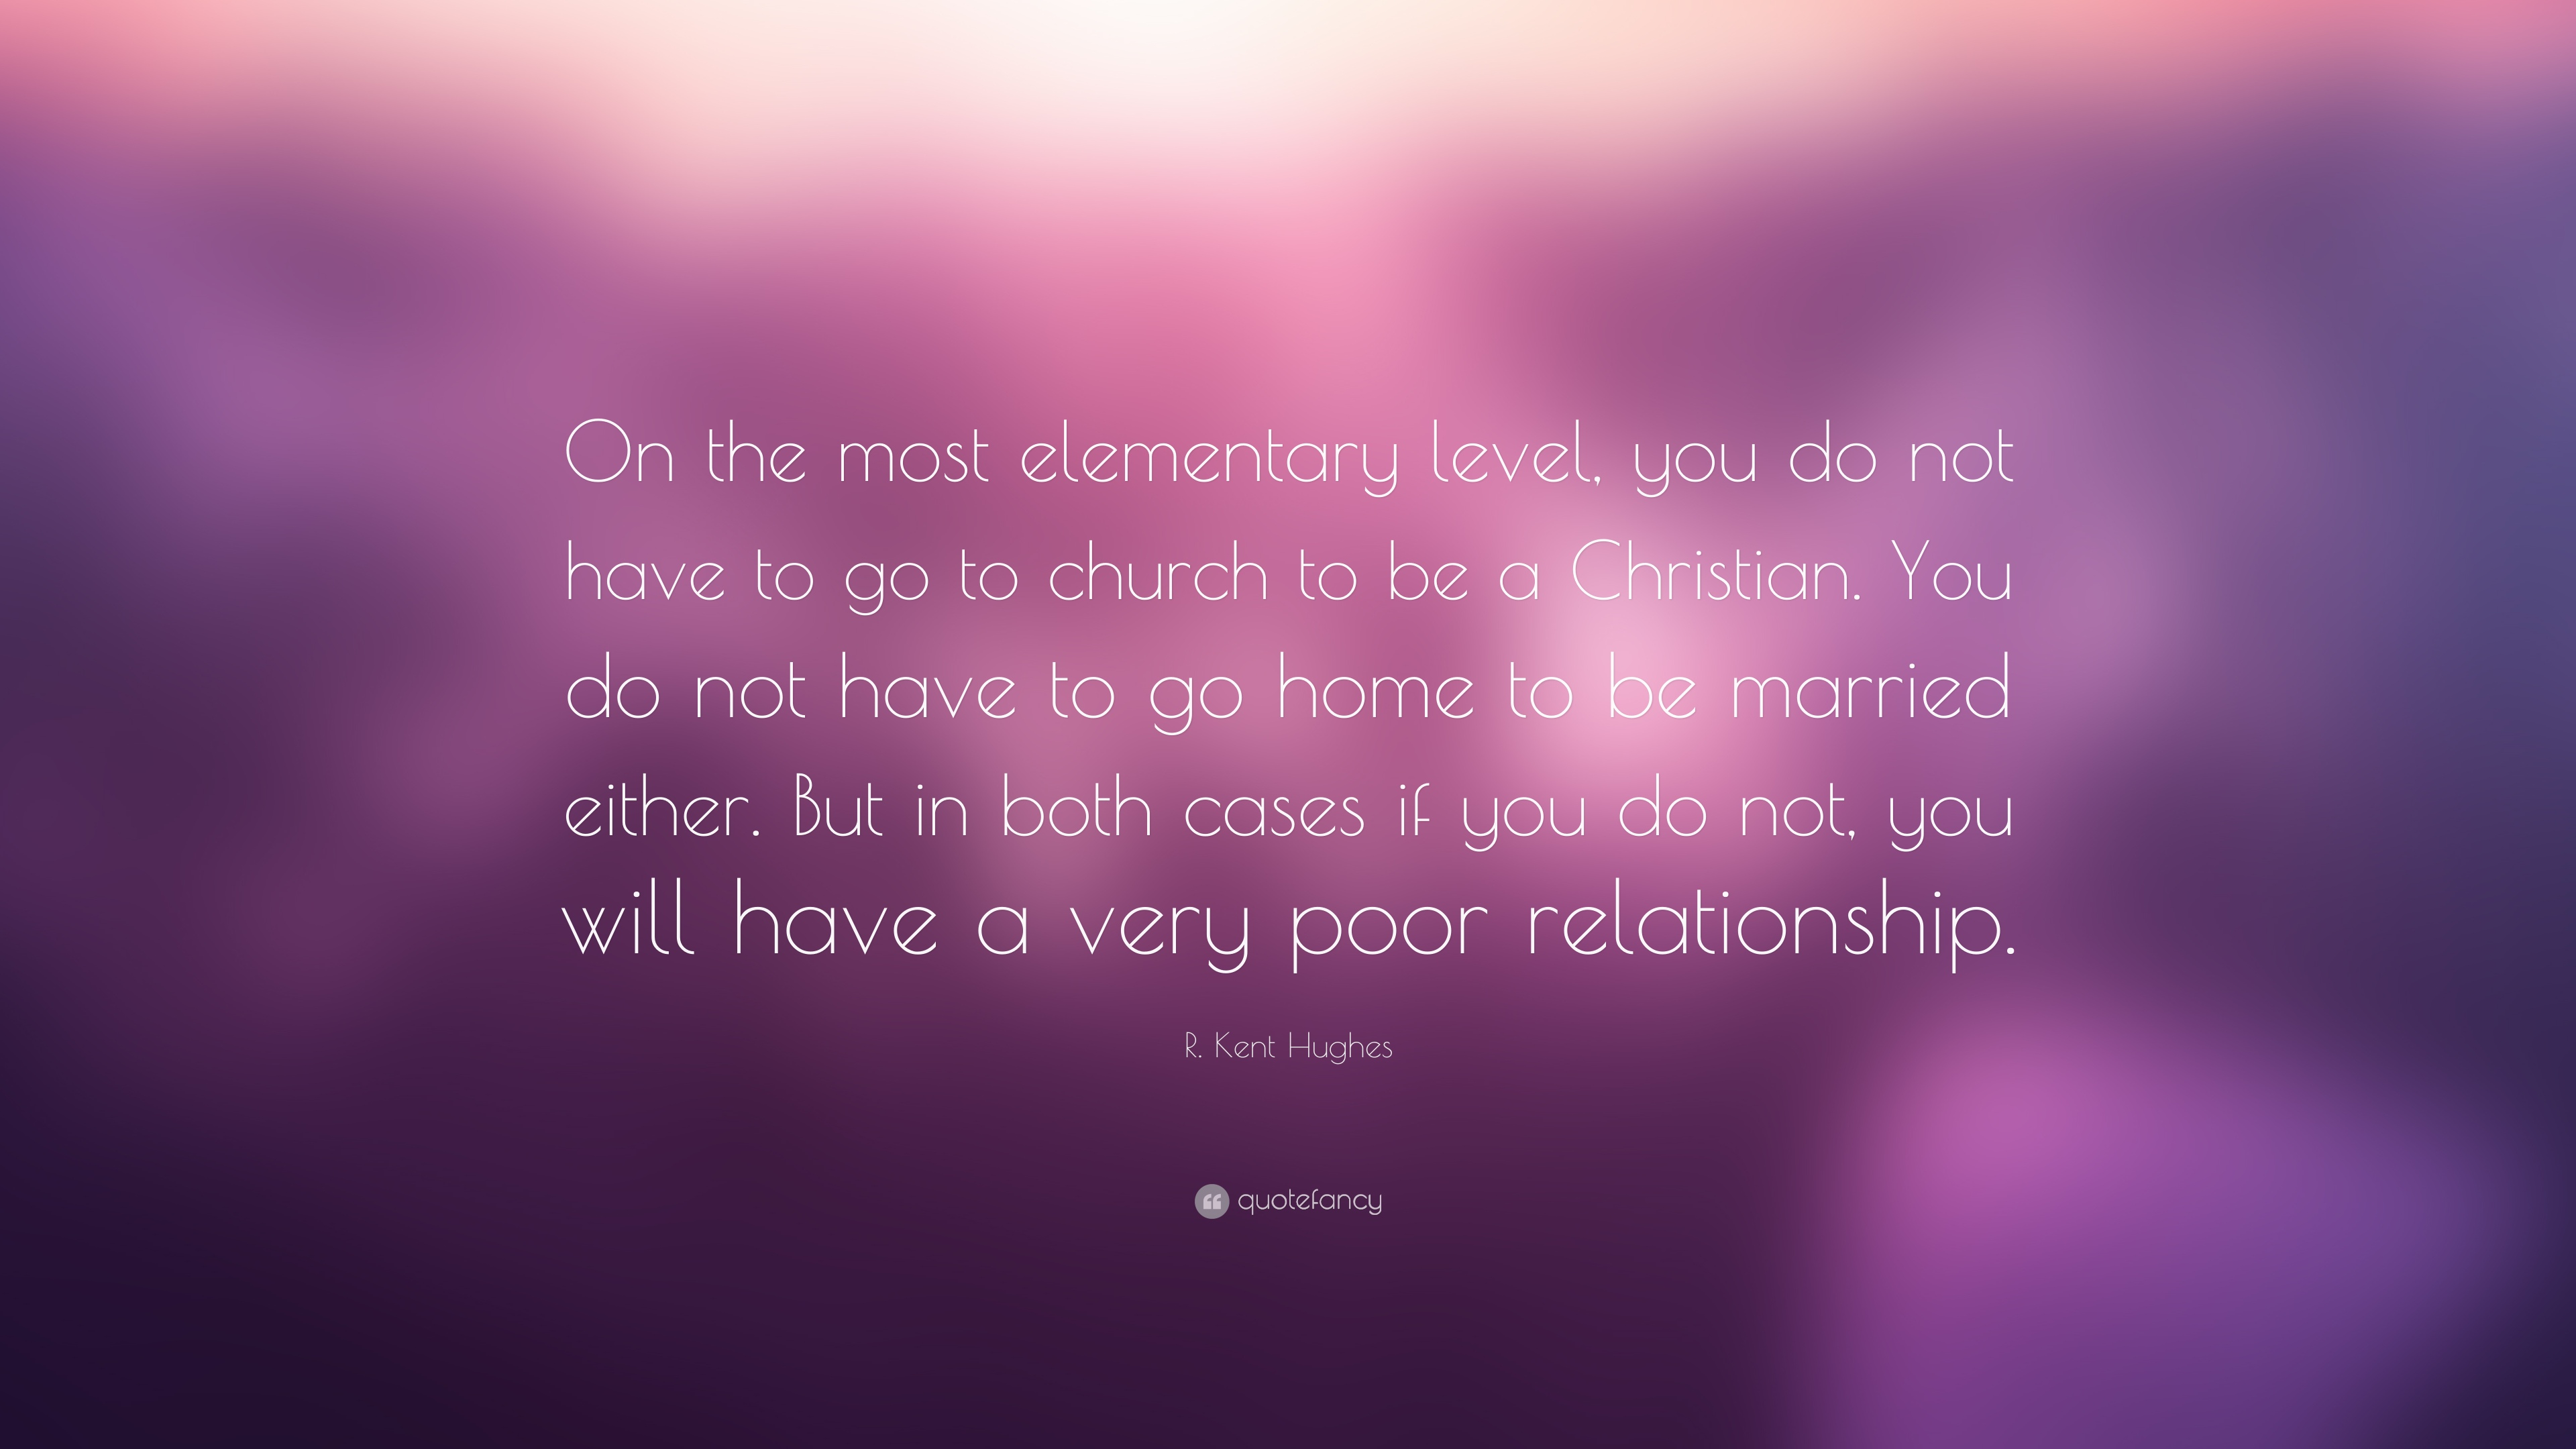 R Kent Hughes Quote On The Most Elementary Level You Do Not Have